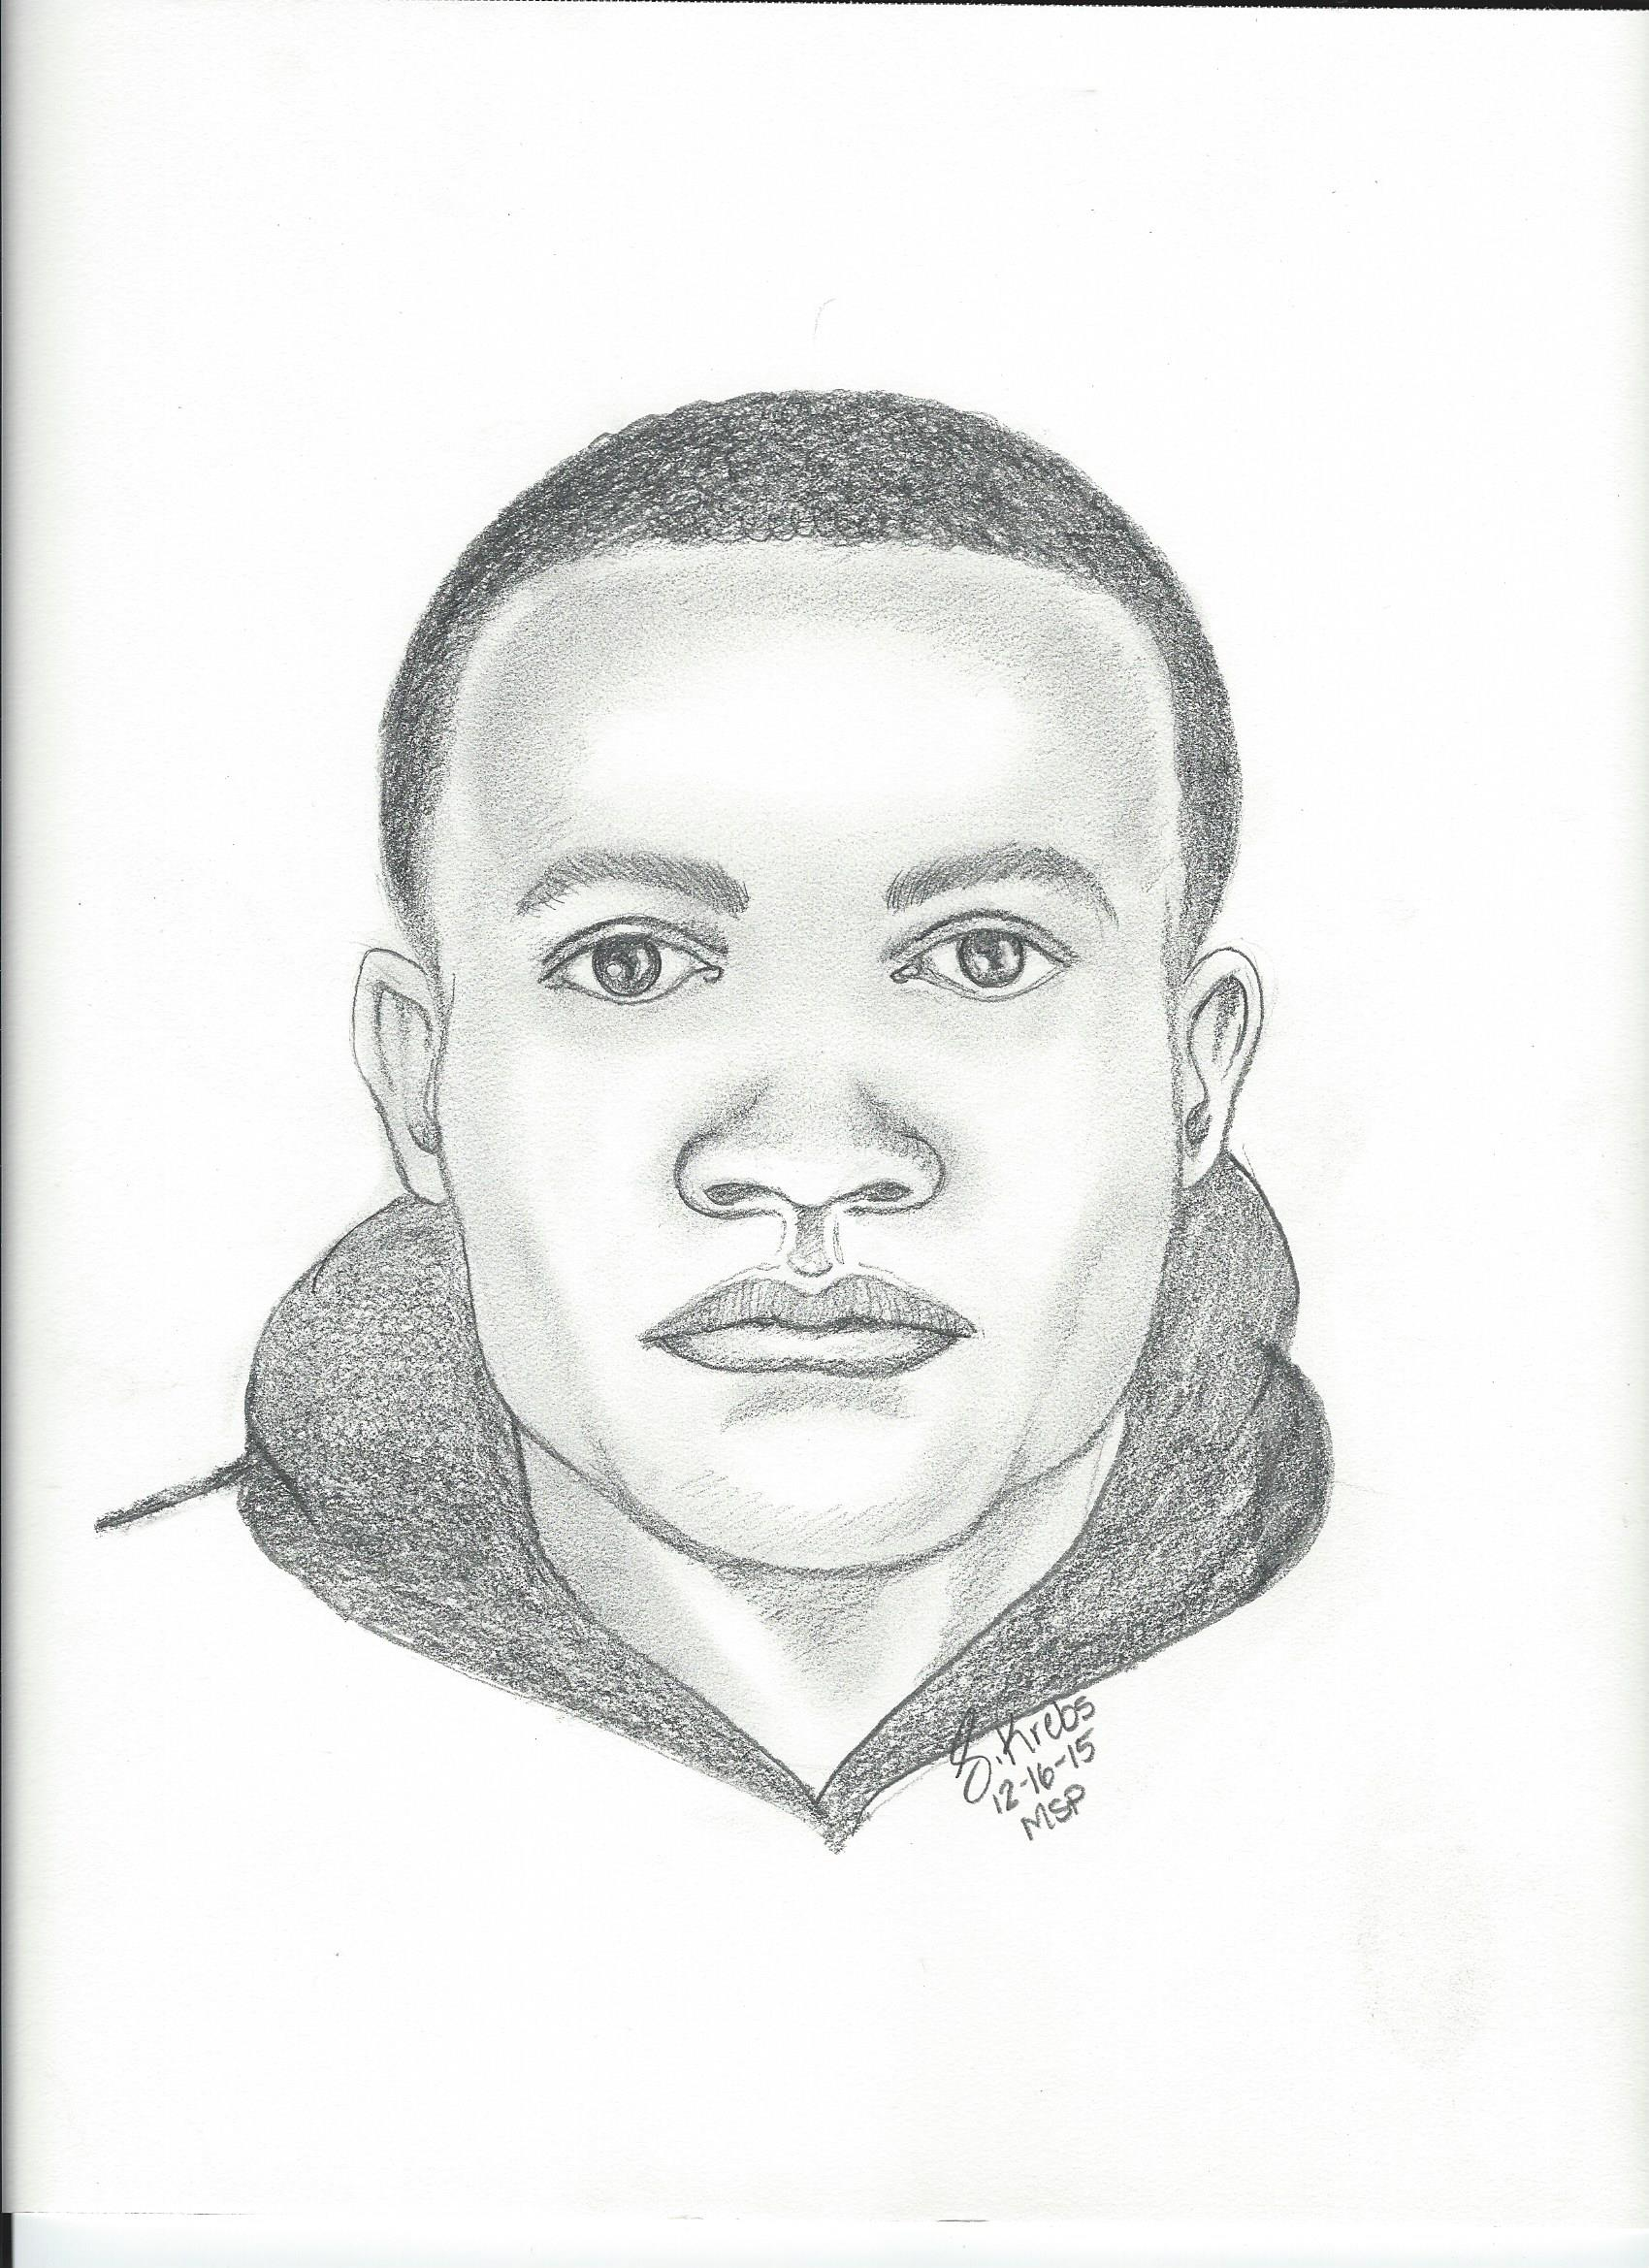 assault suspect sketch